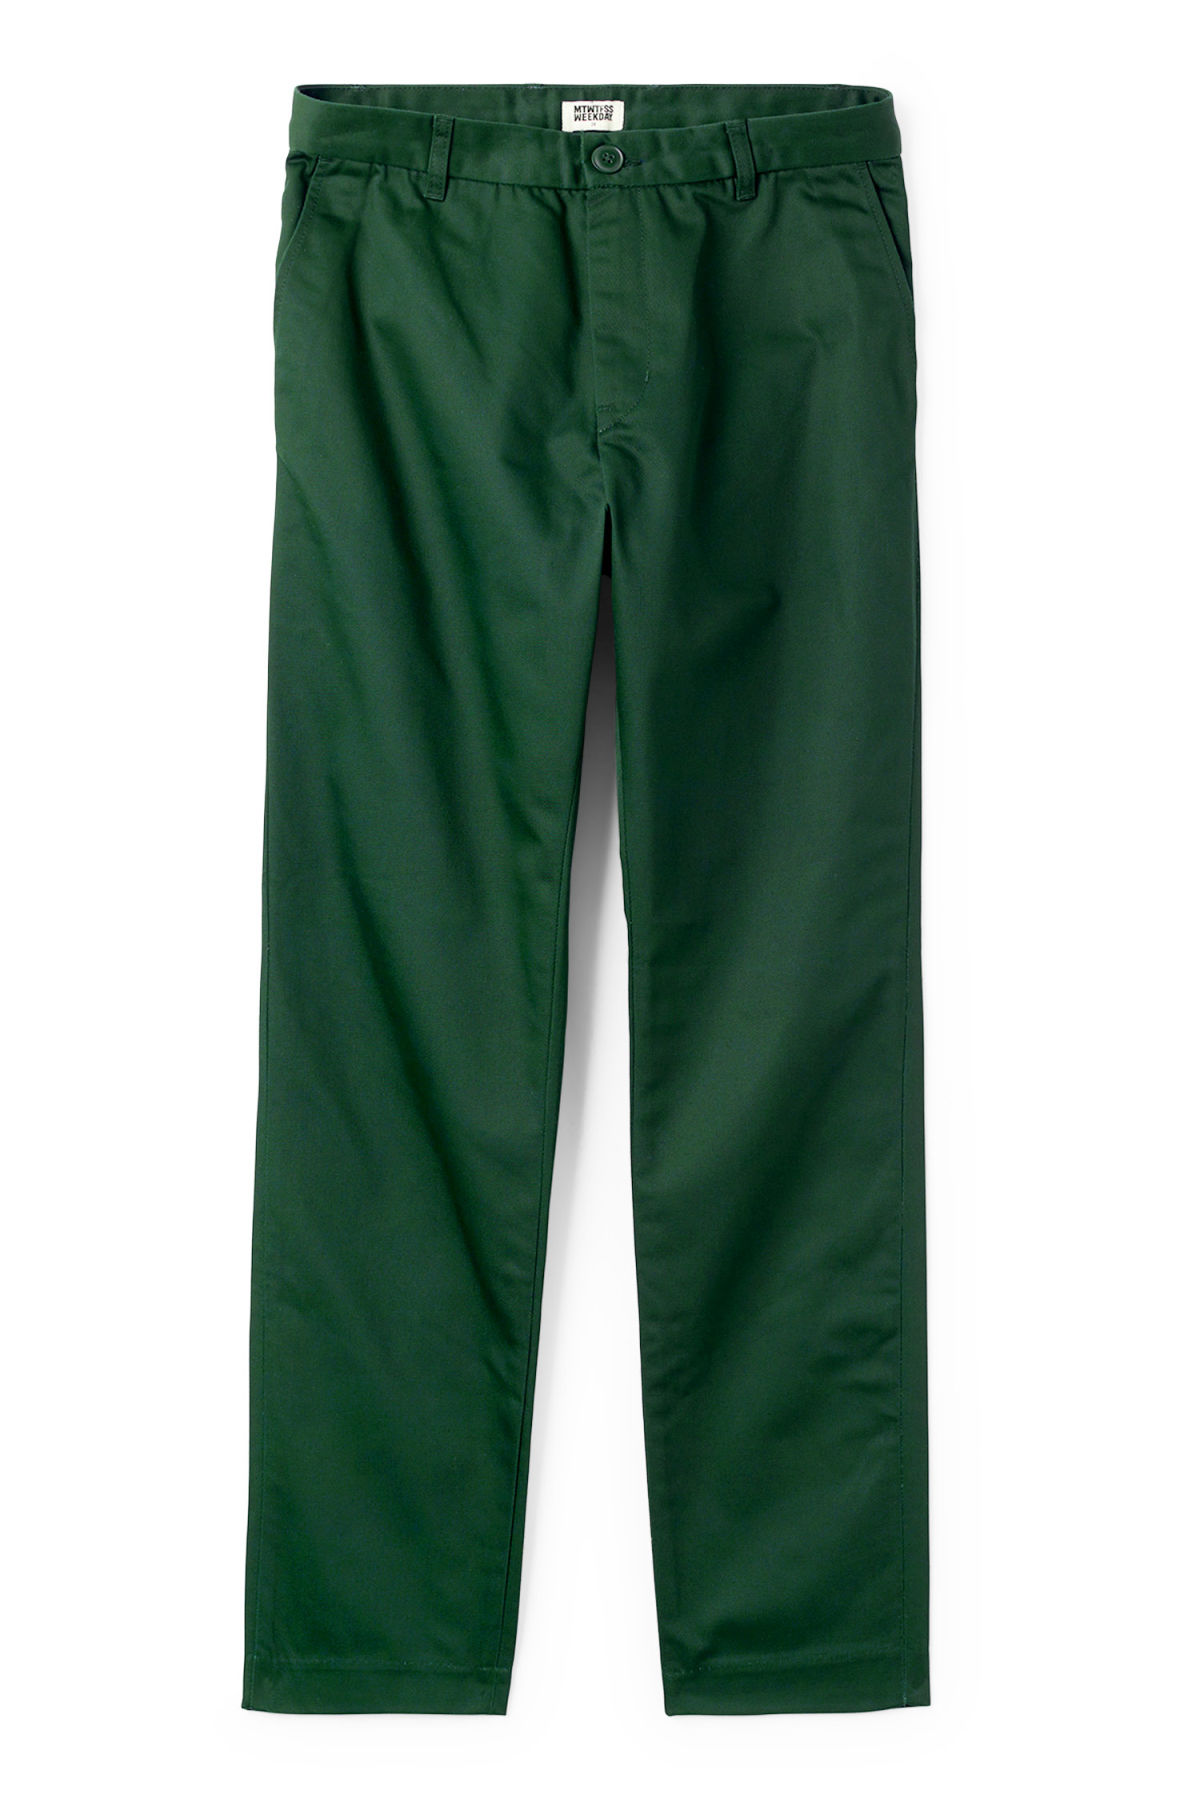 Forest Chinos - Green Weekday pcz3iS